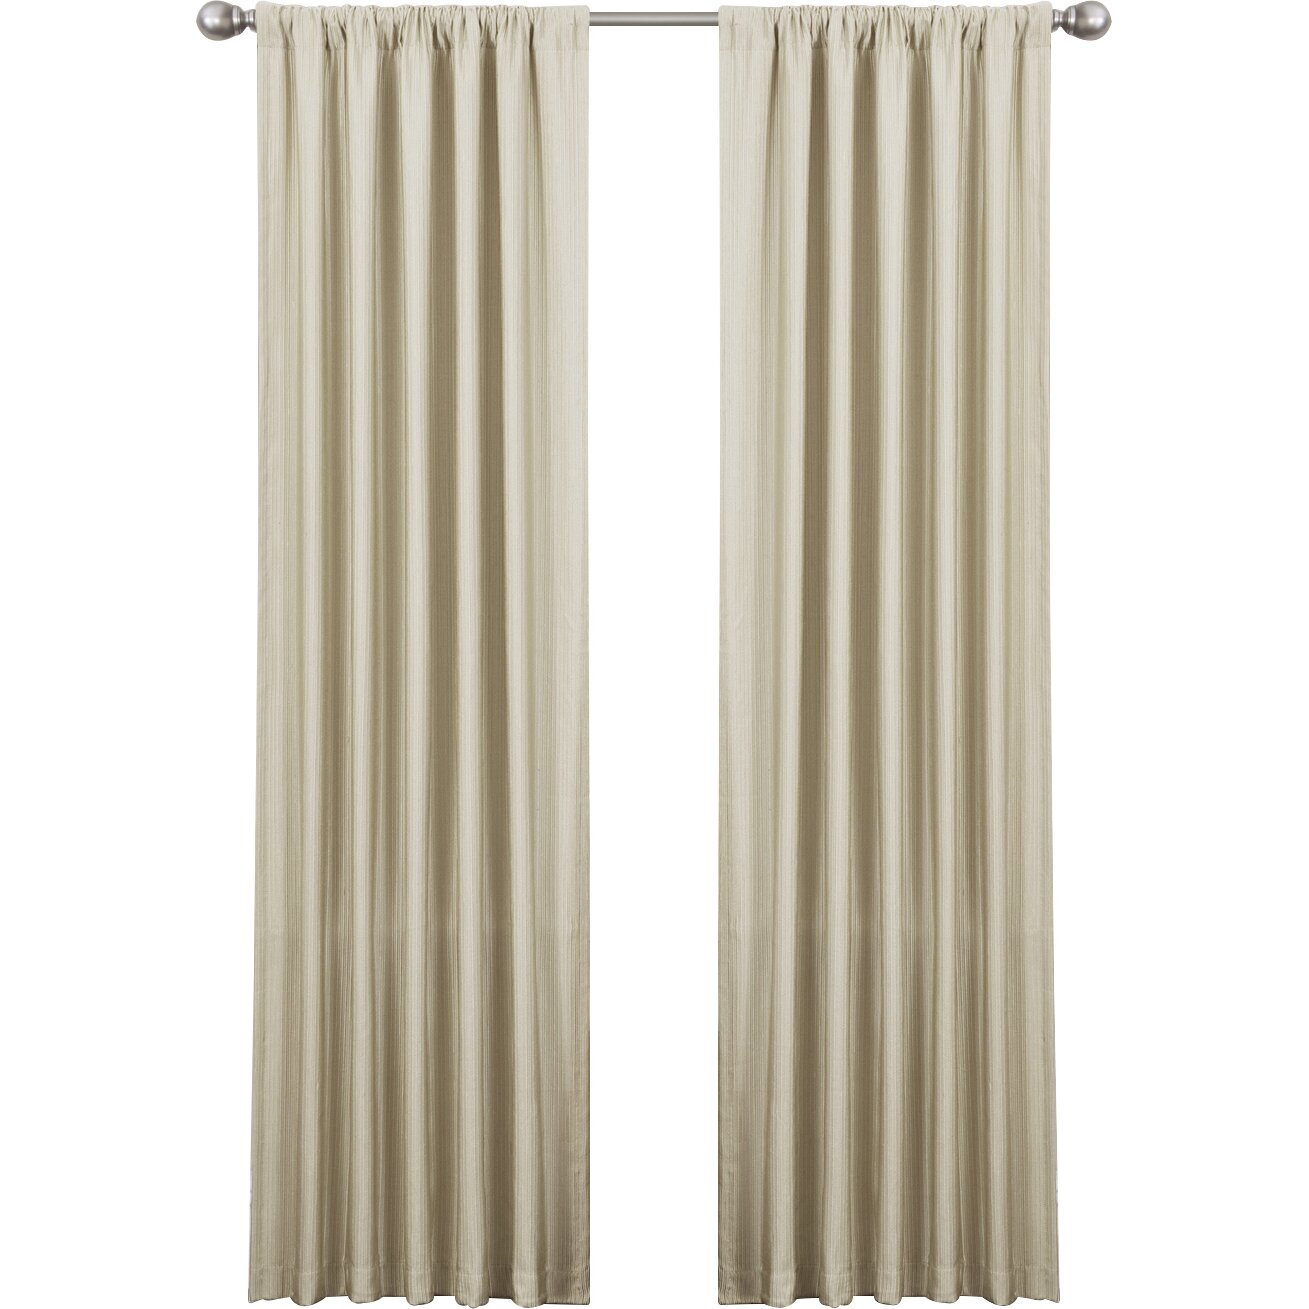 Lush Decor Lake Como Curtains Window Curtain Panels Free Image